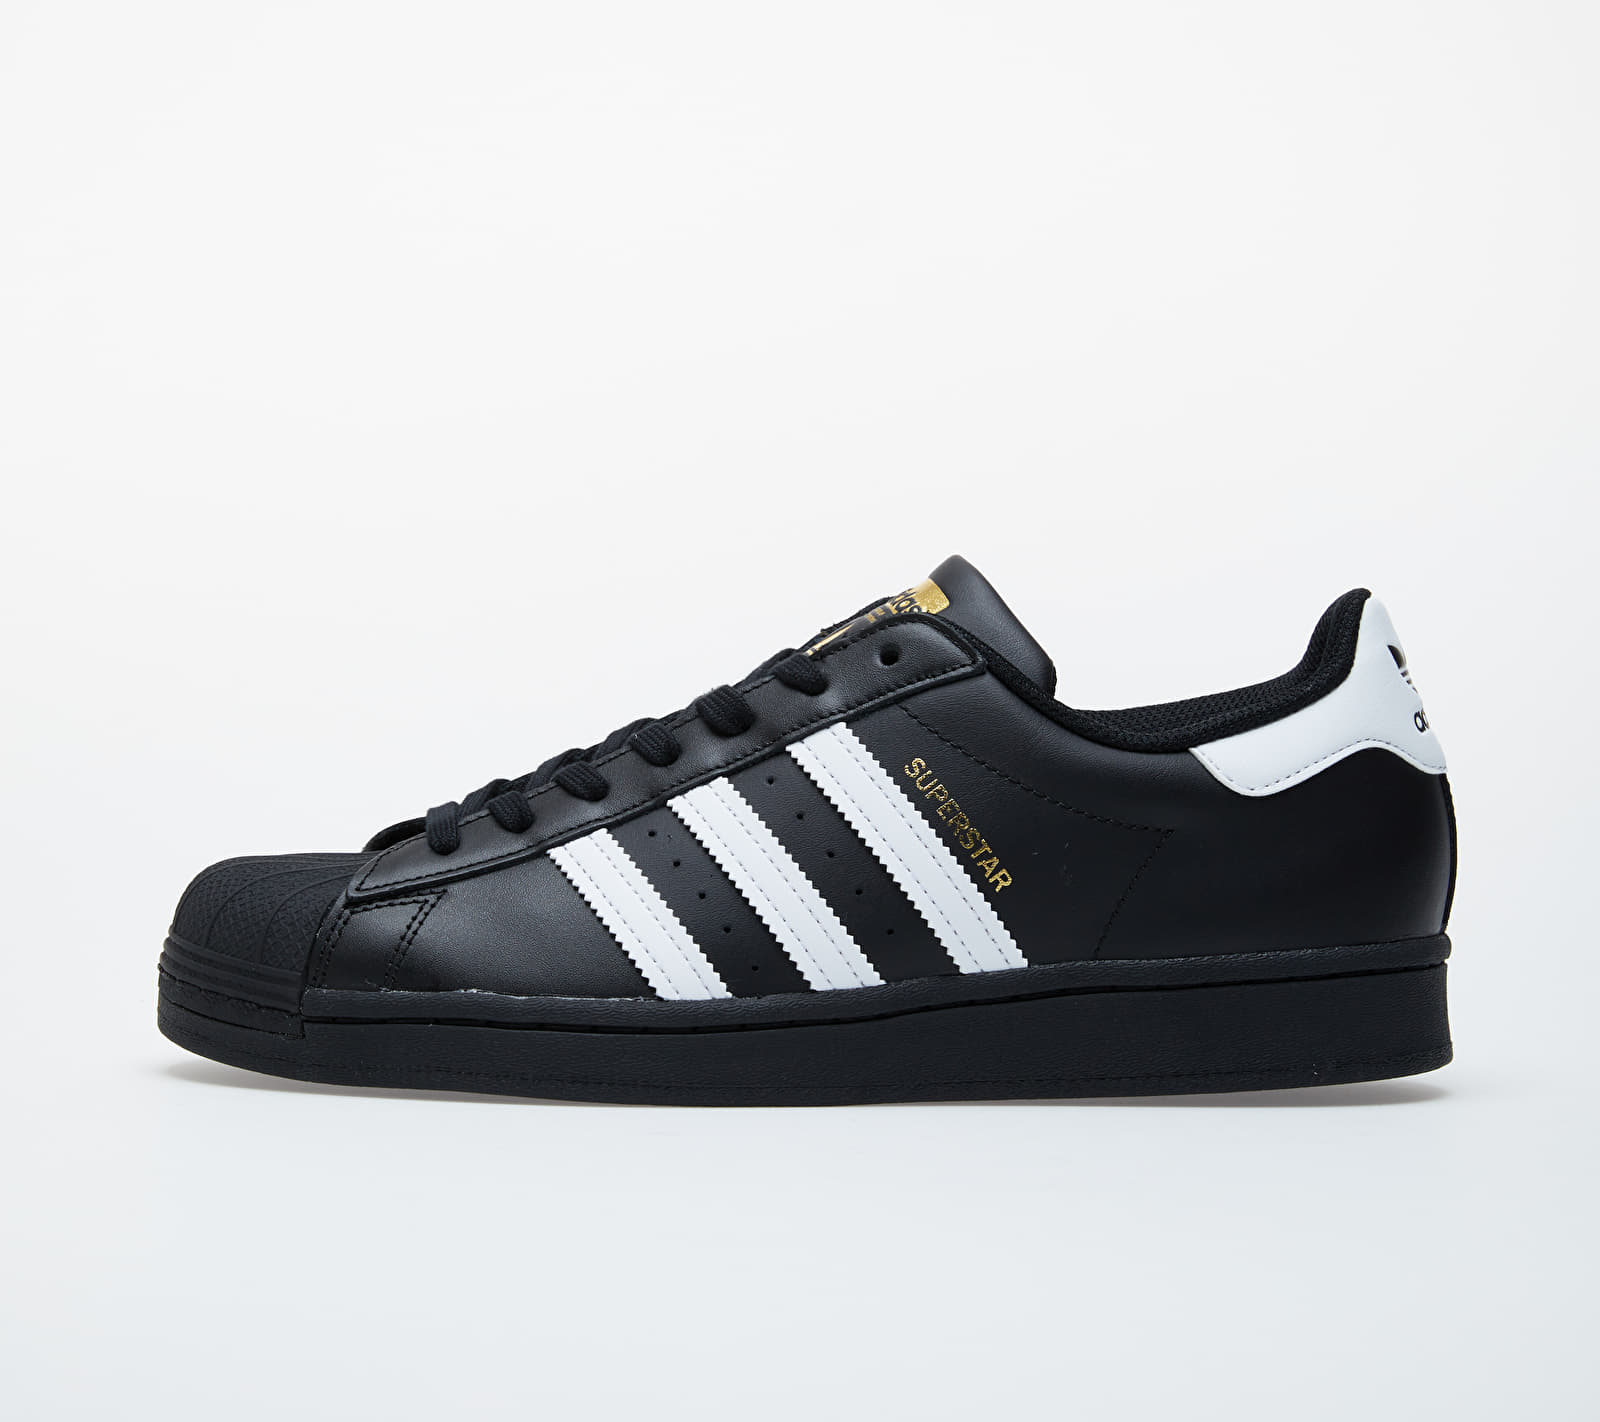 adidas Superstar Core Black/ Ftw White/ Core Black EUR 42